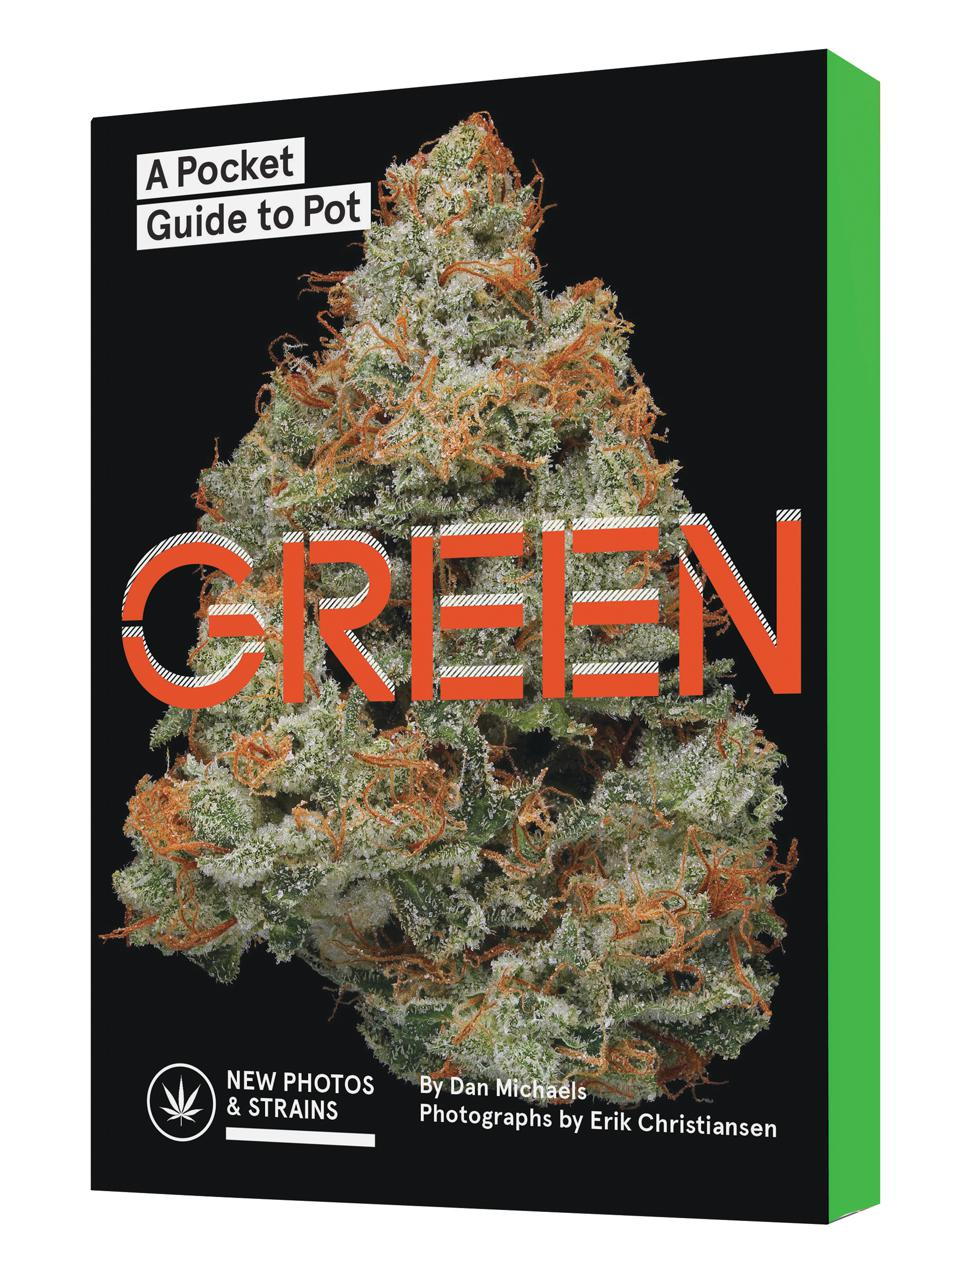 GREEN, Dan Michaels, Erik Christiansen, cannabis books, marijuana photography